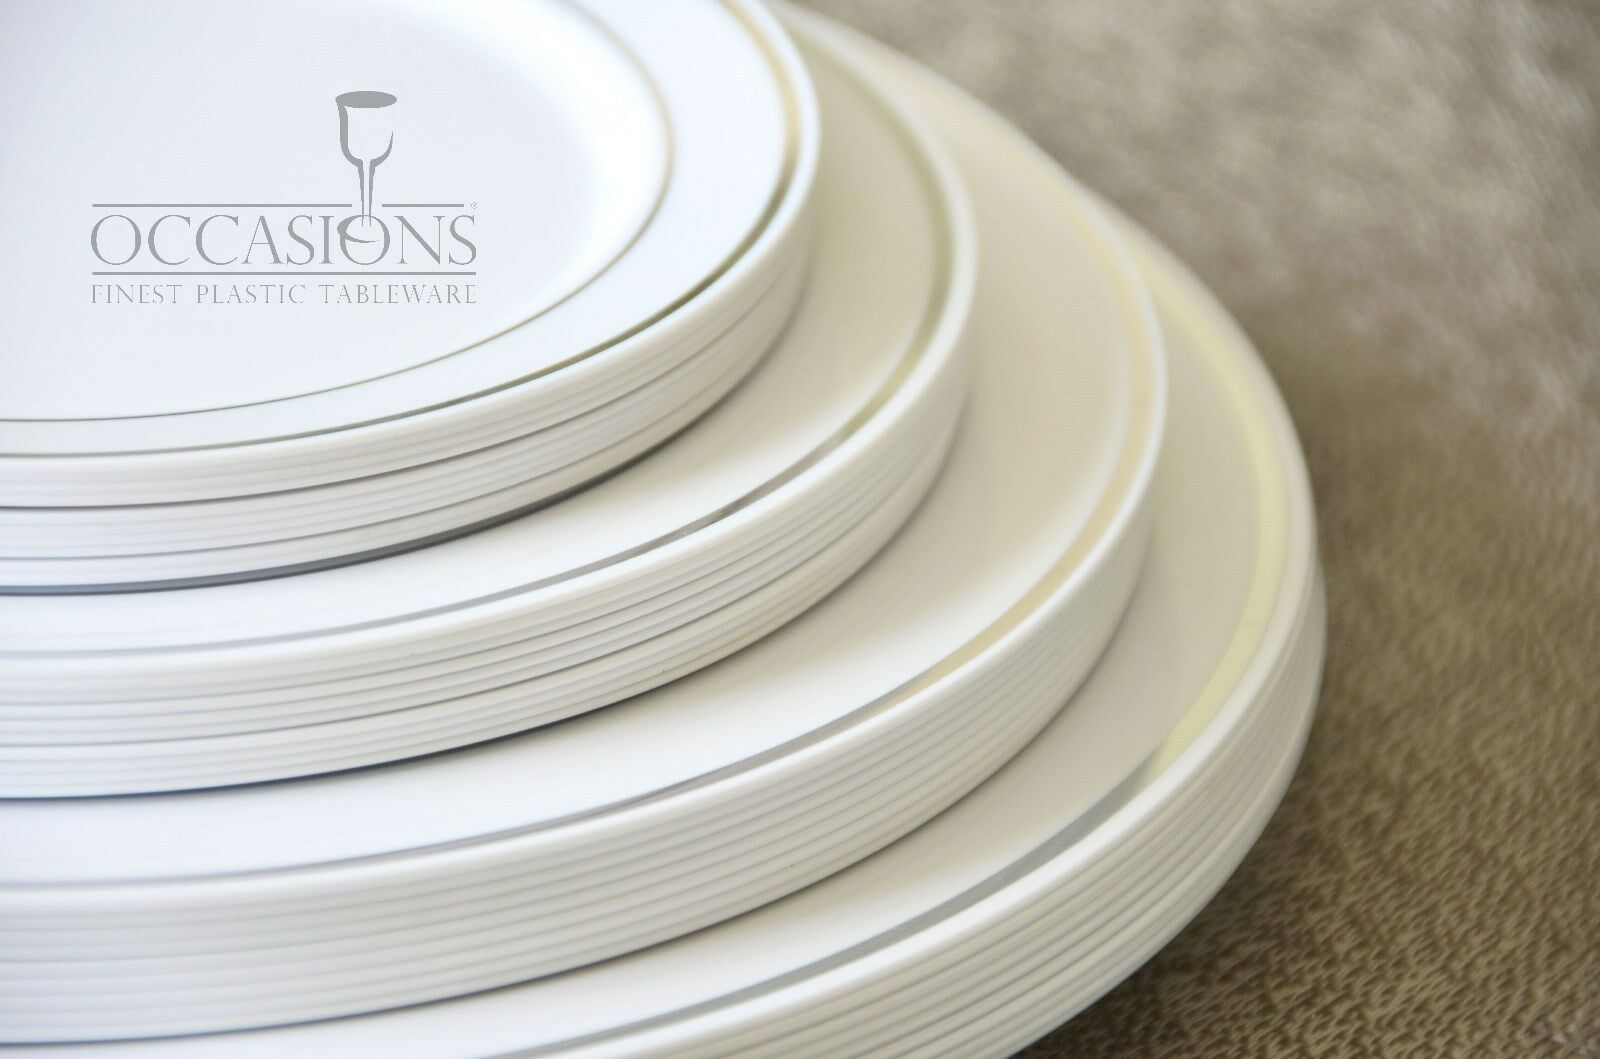 """ OCCASIONS "" Wedding Party Disposable Plastic Party Plates,"